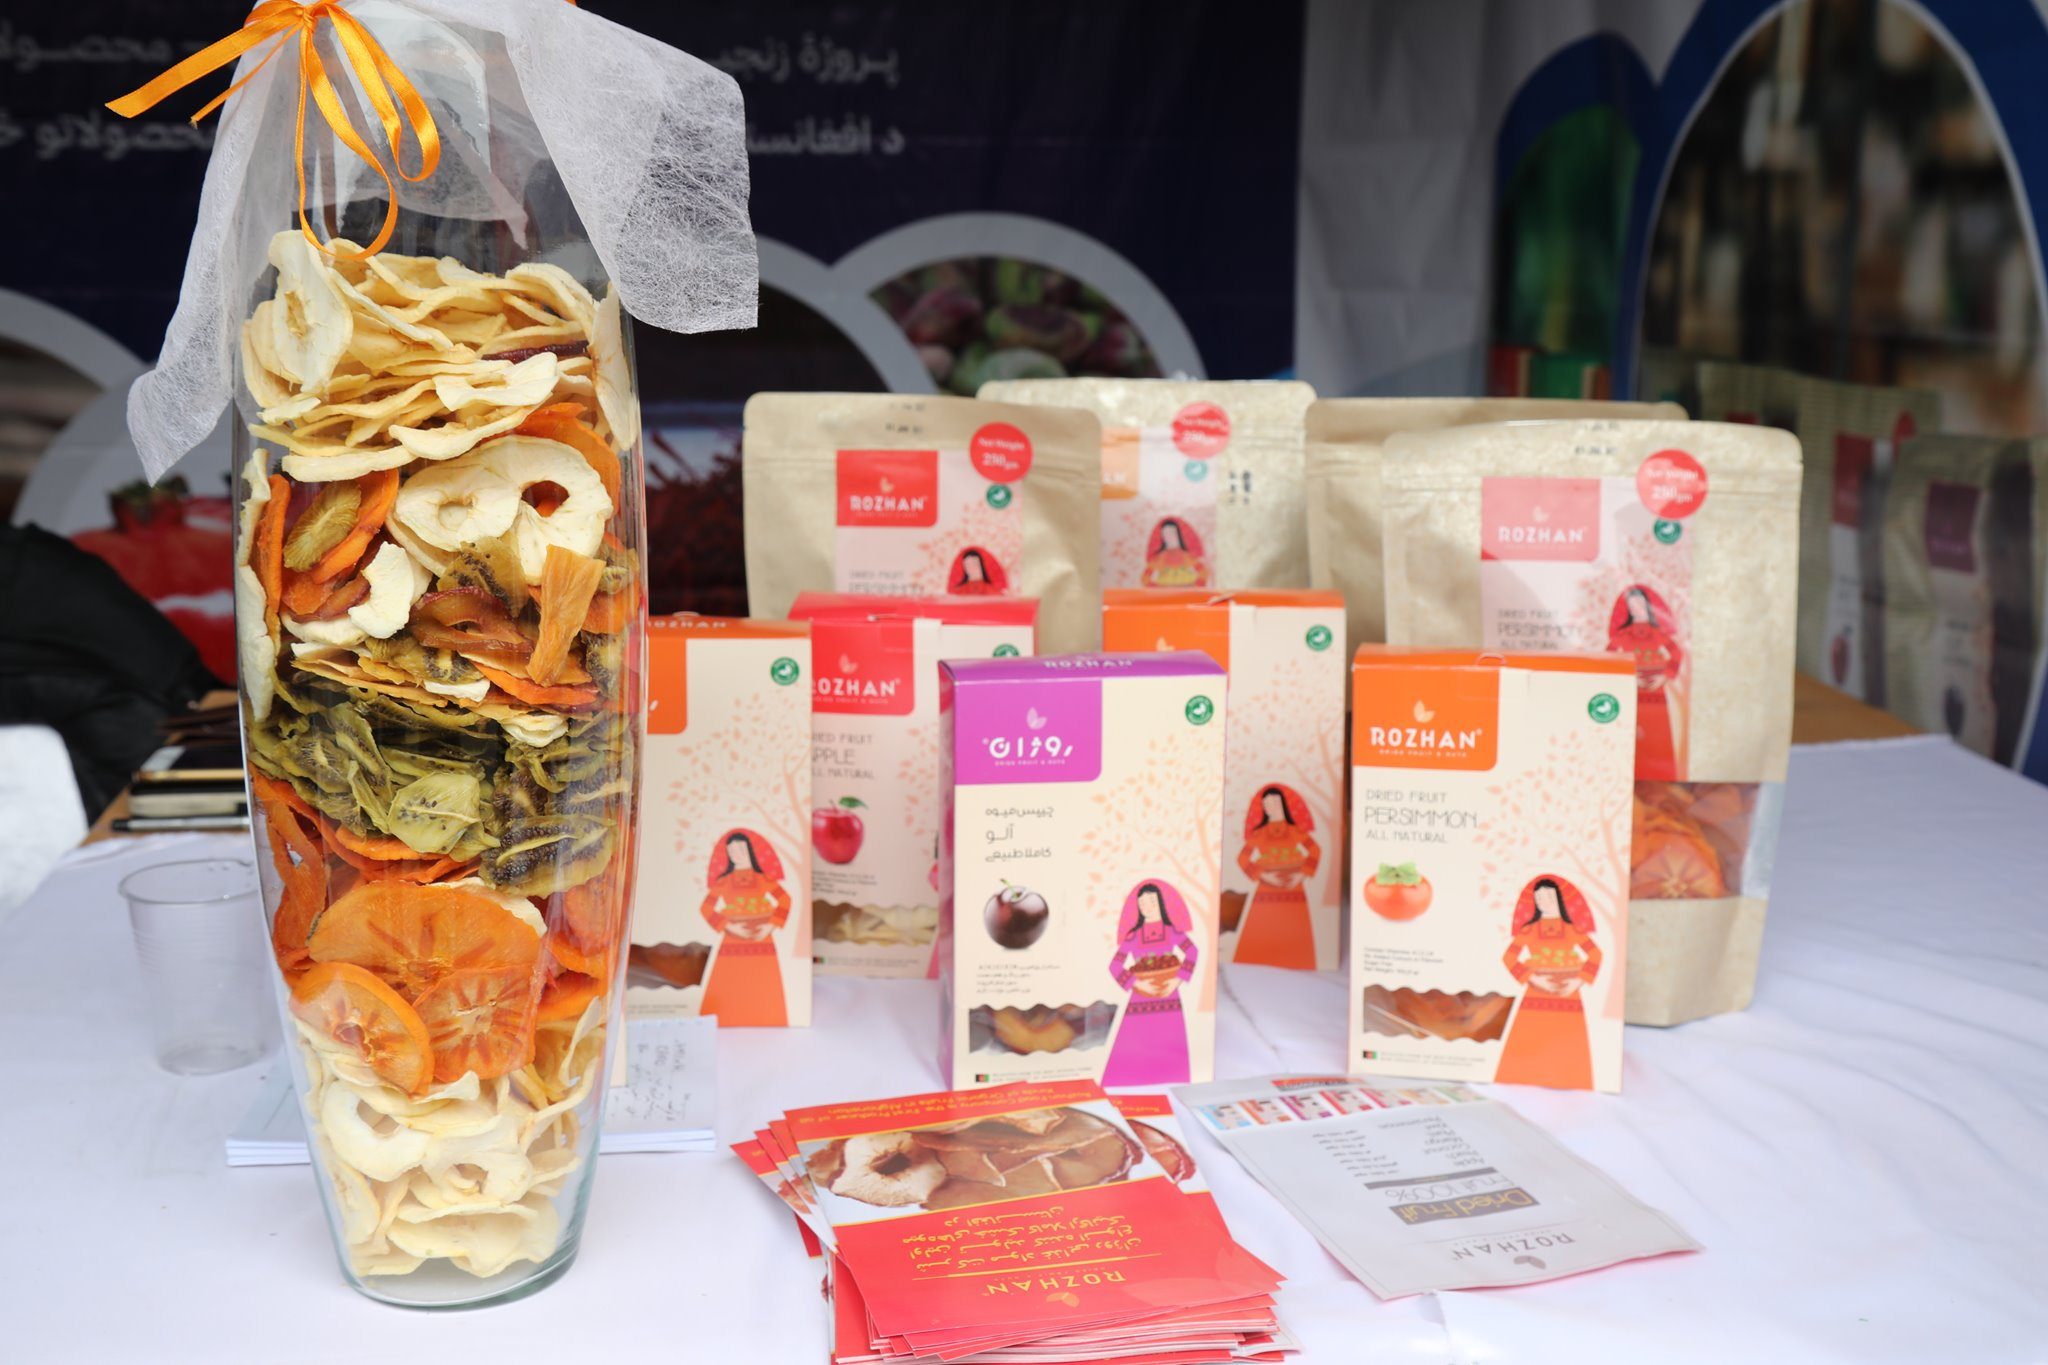 Saffron products, buy good quality saffron in 25th Saffron's agricultural products' exhibition. The exhibition is open to the public until the end of Thursday, fifth of Hamal.